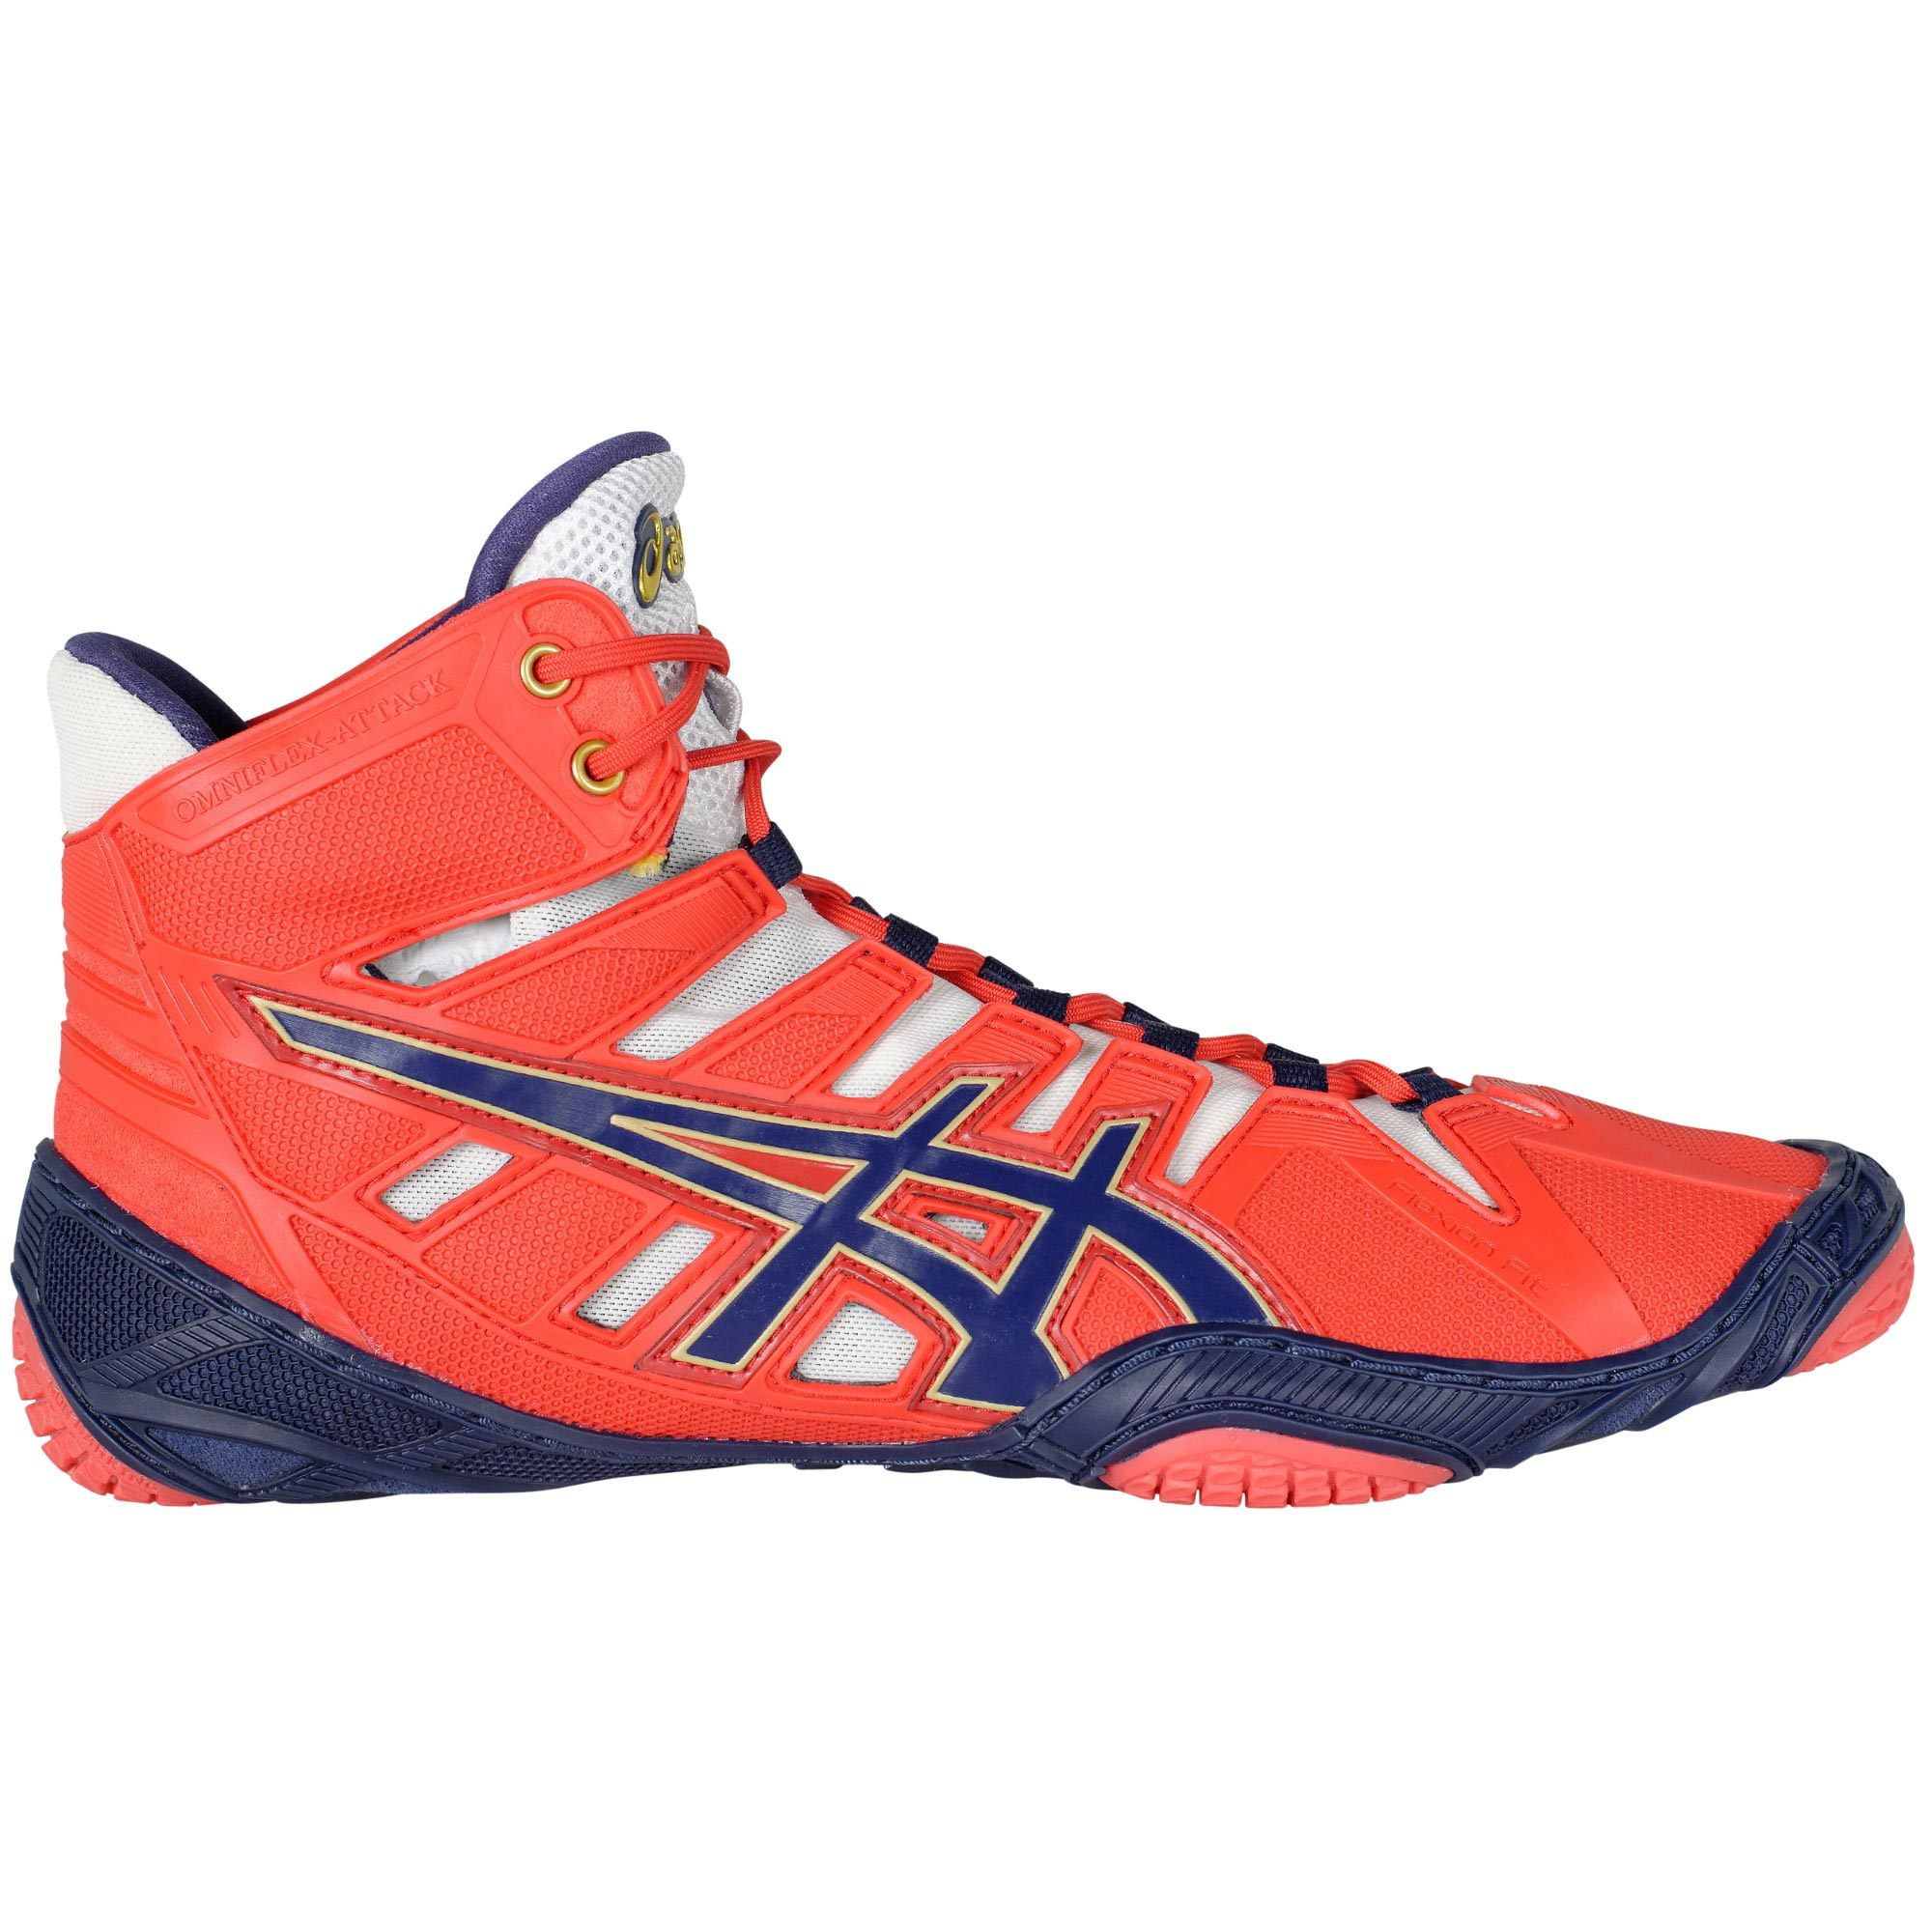 ASICS Omniflex Attack Shoes | WrestlingMart | Free Shipping